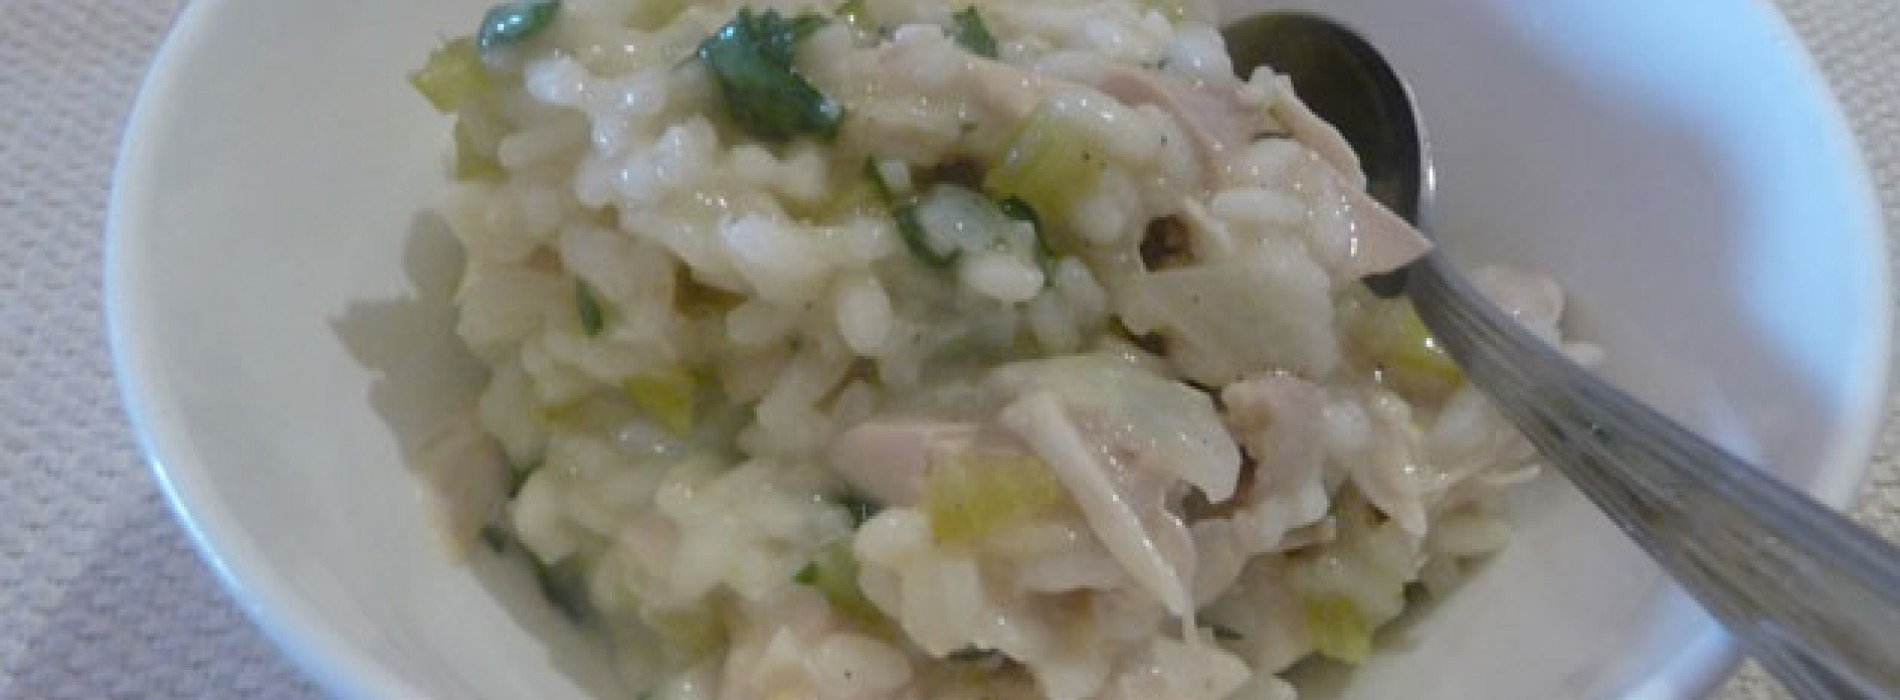 Roast Chicken Risotto